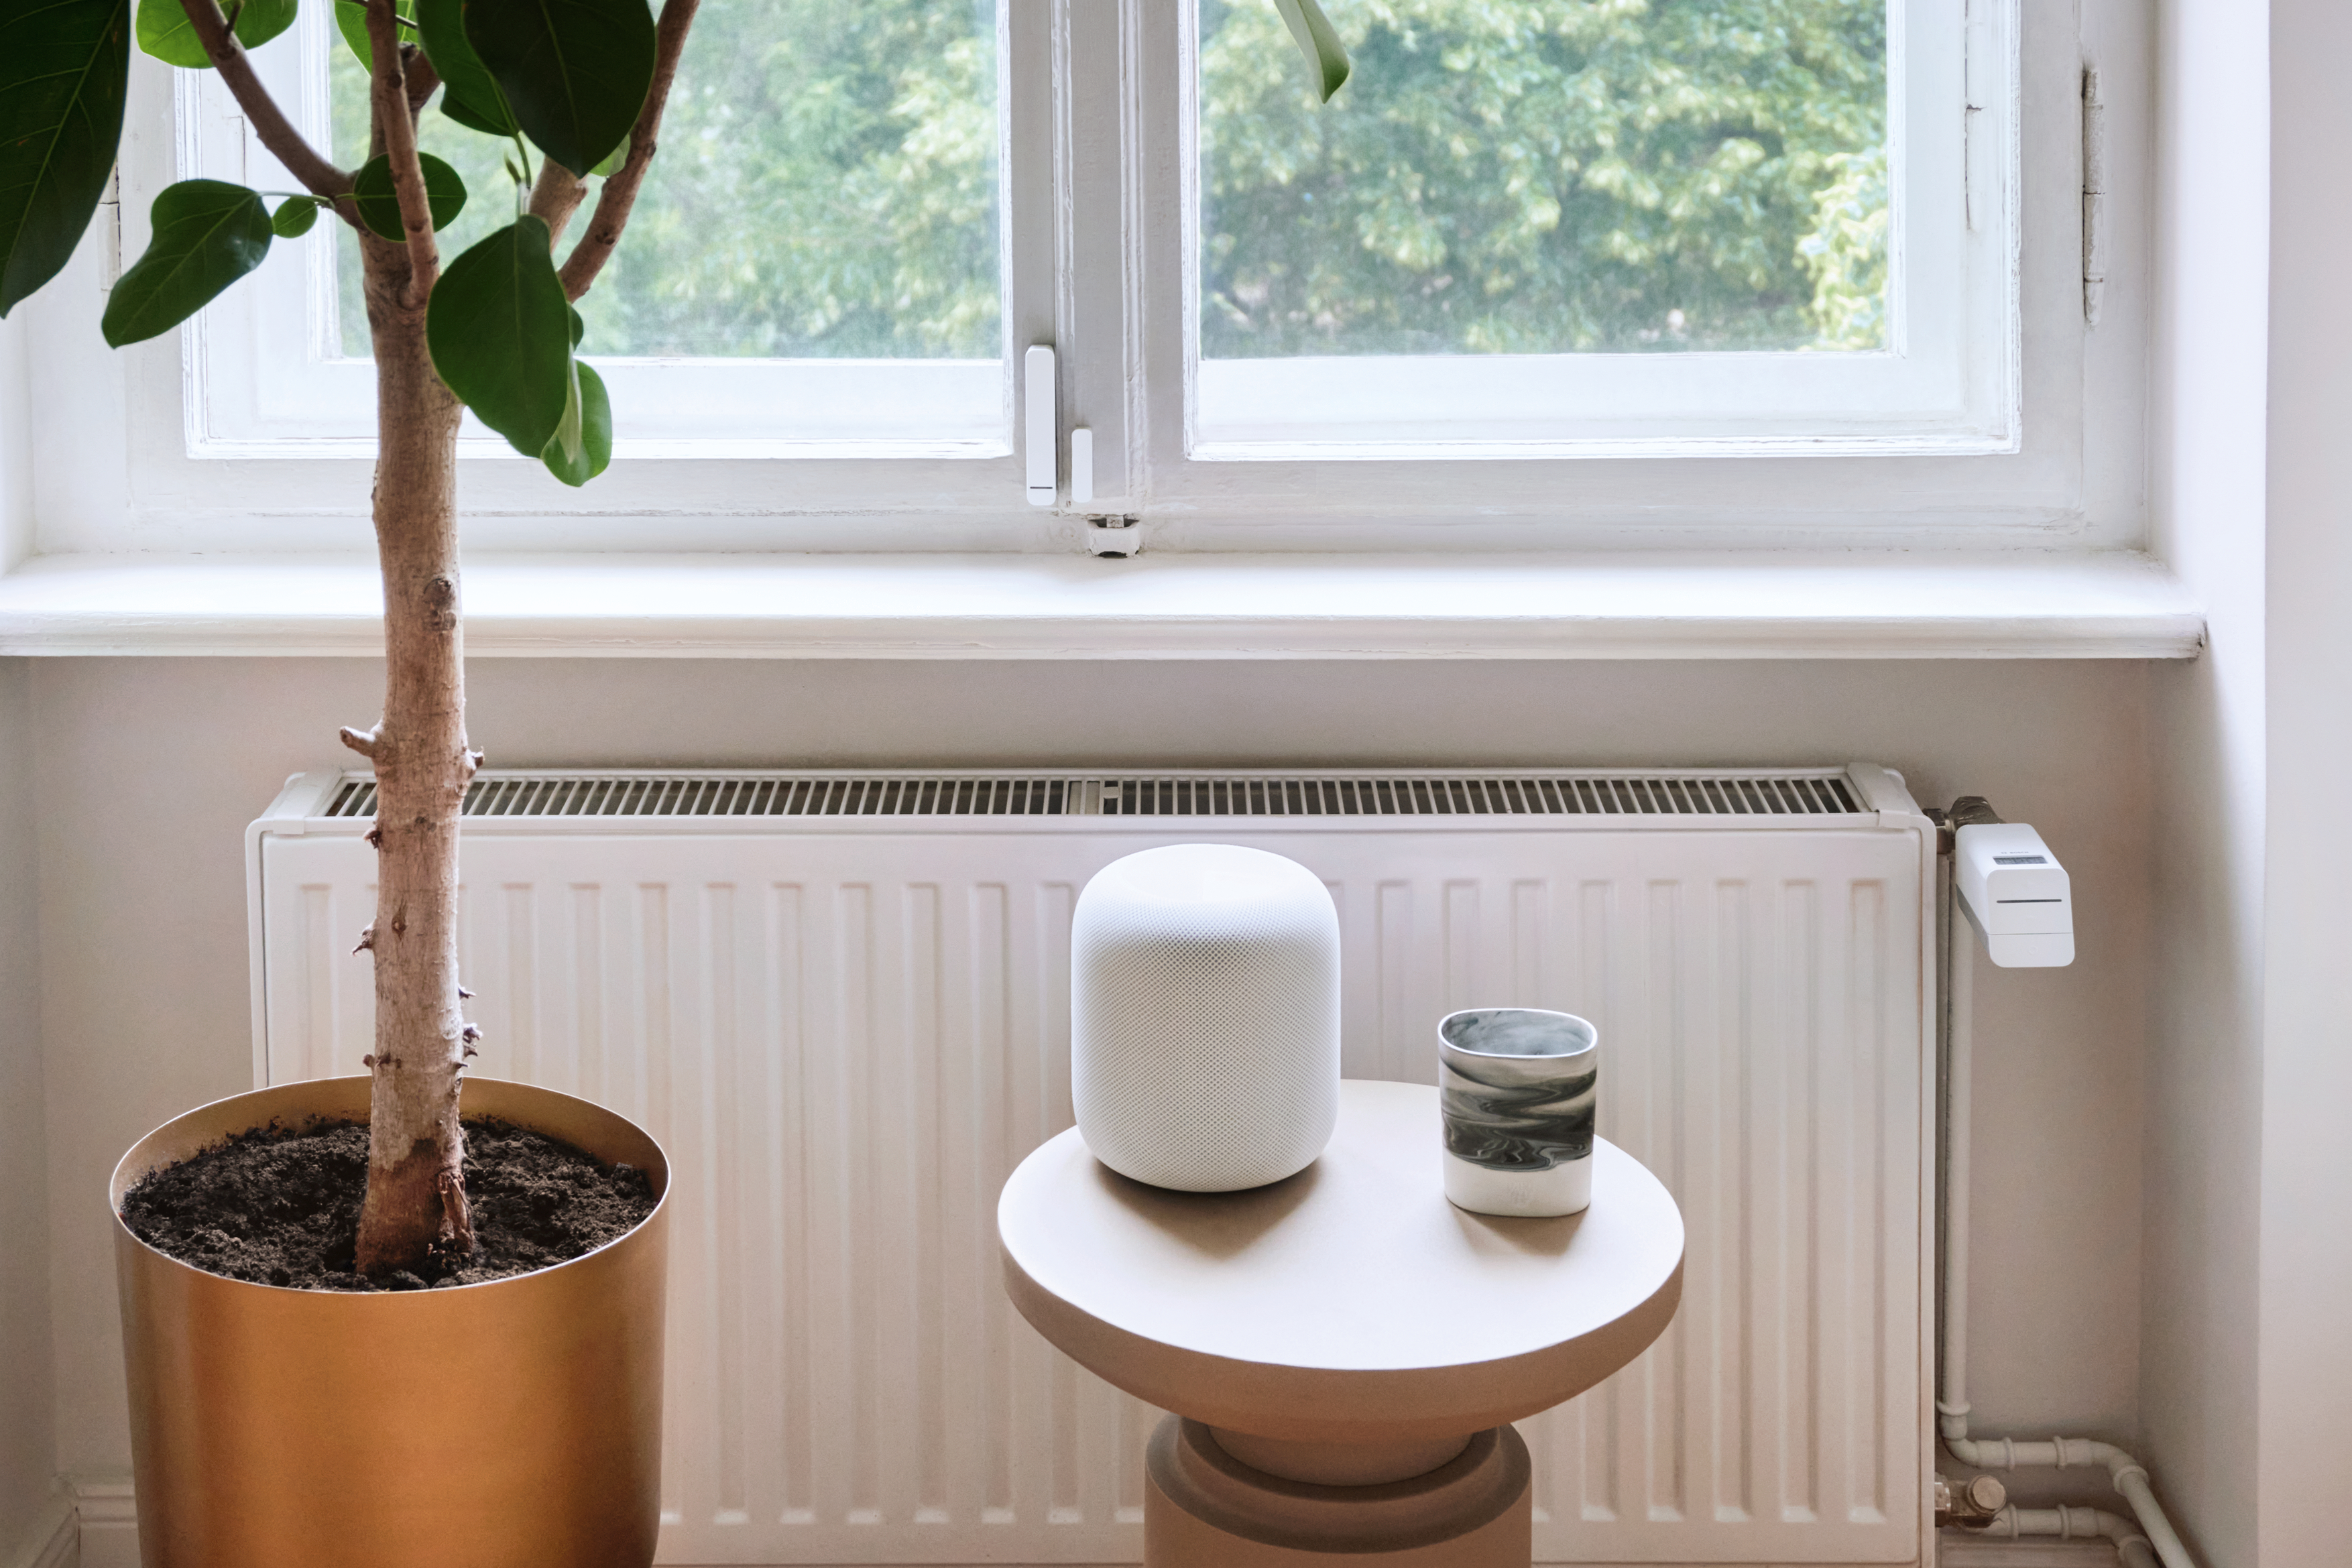 Bosch Smart Home steuerbar über Apple HomePod